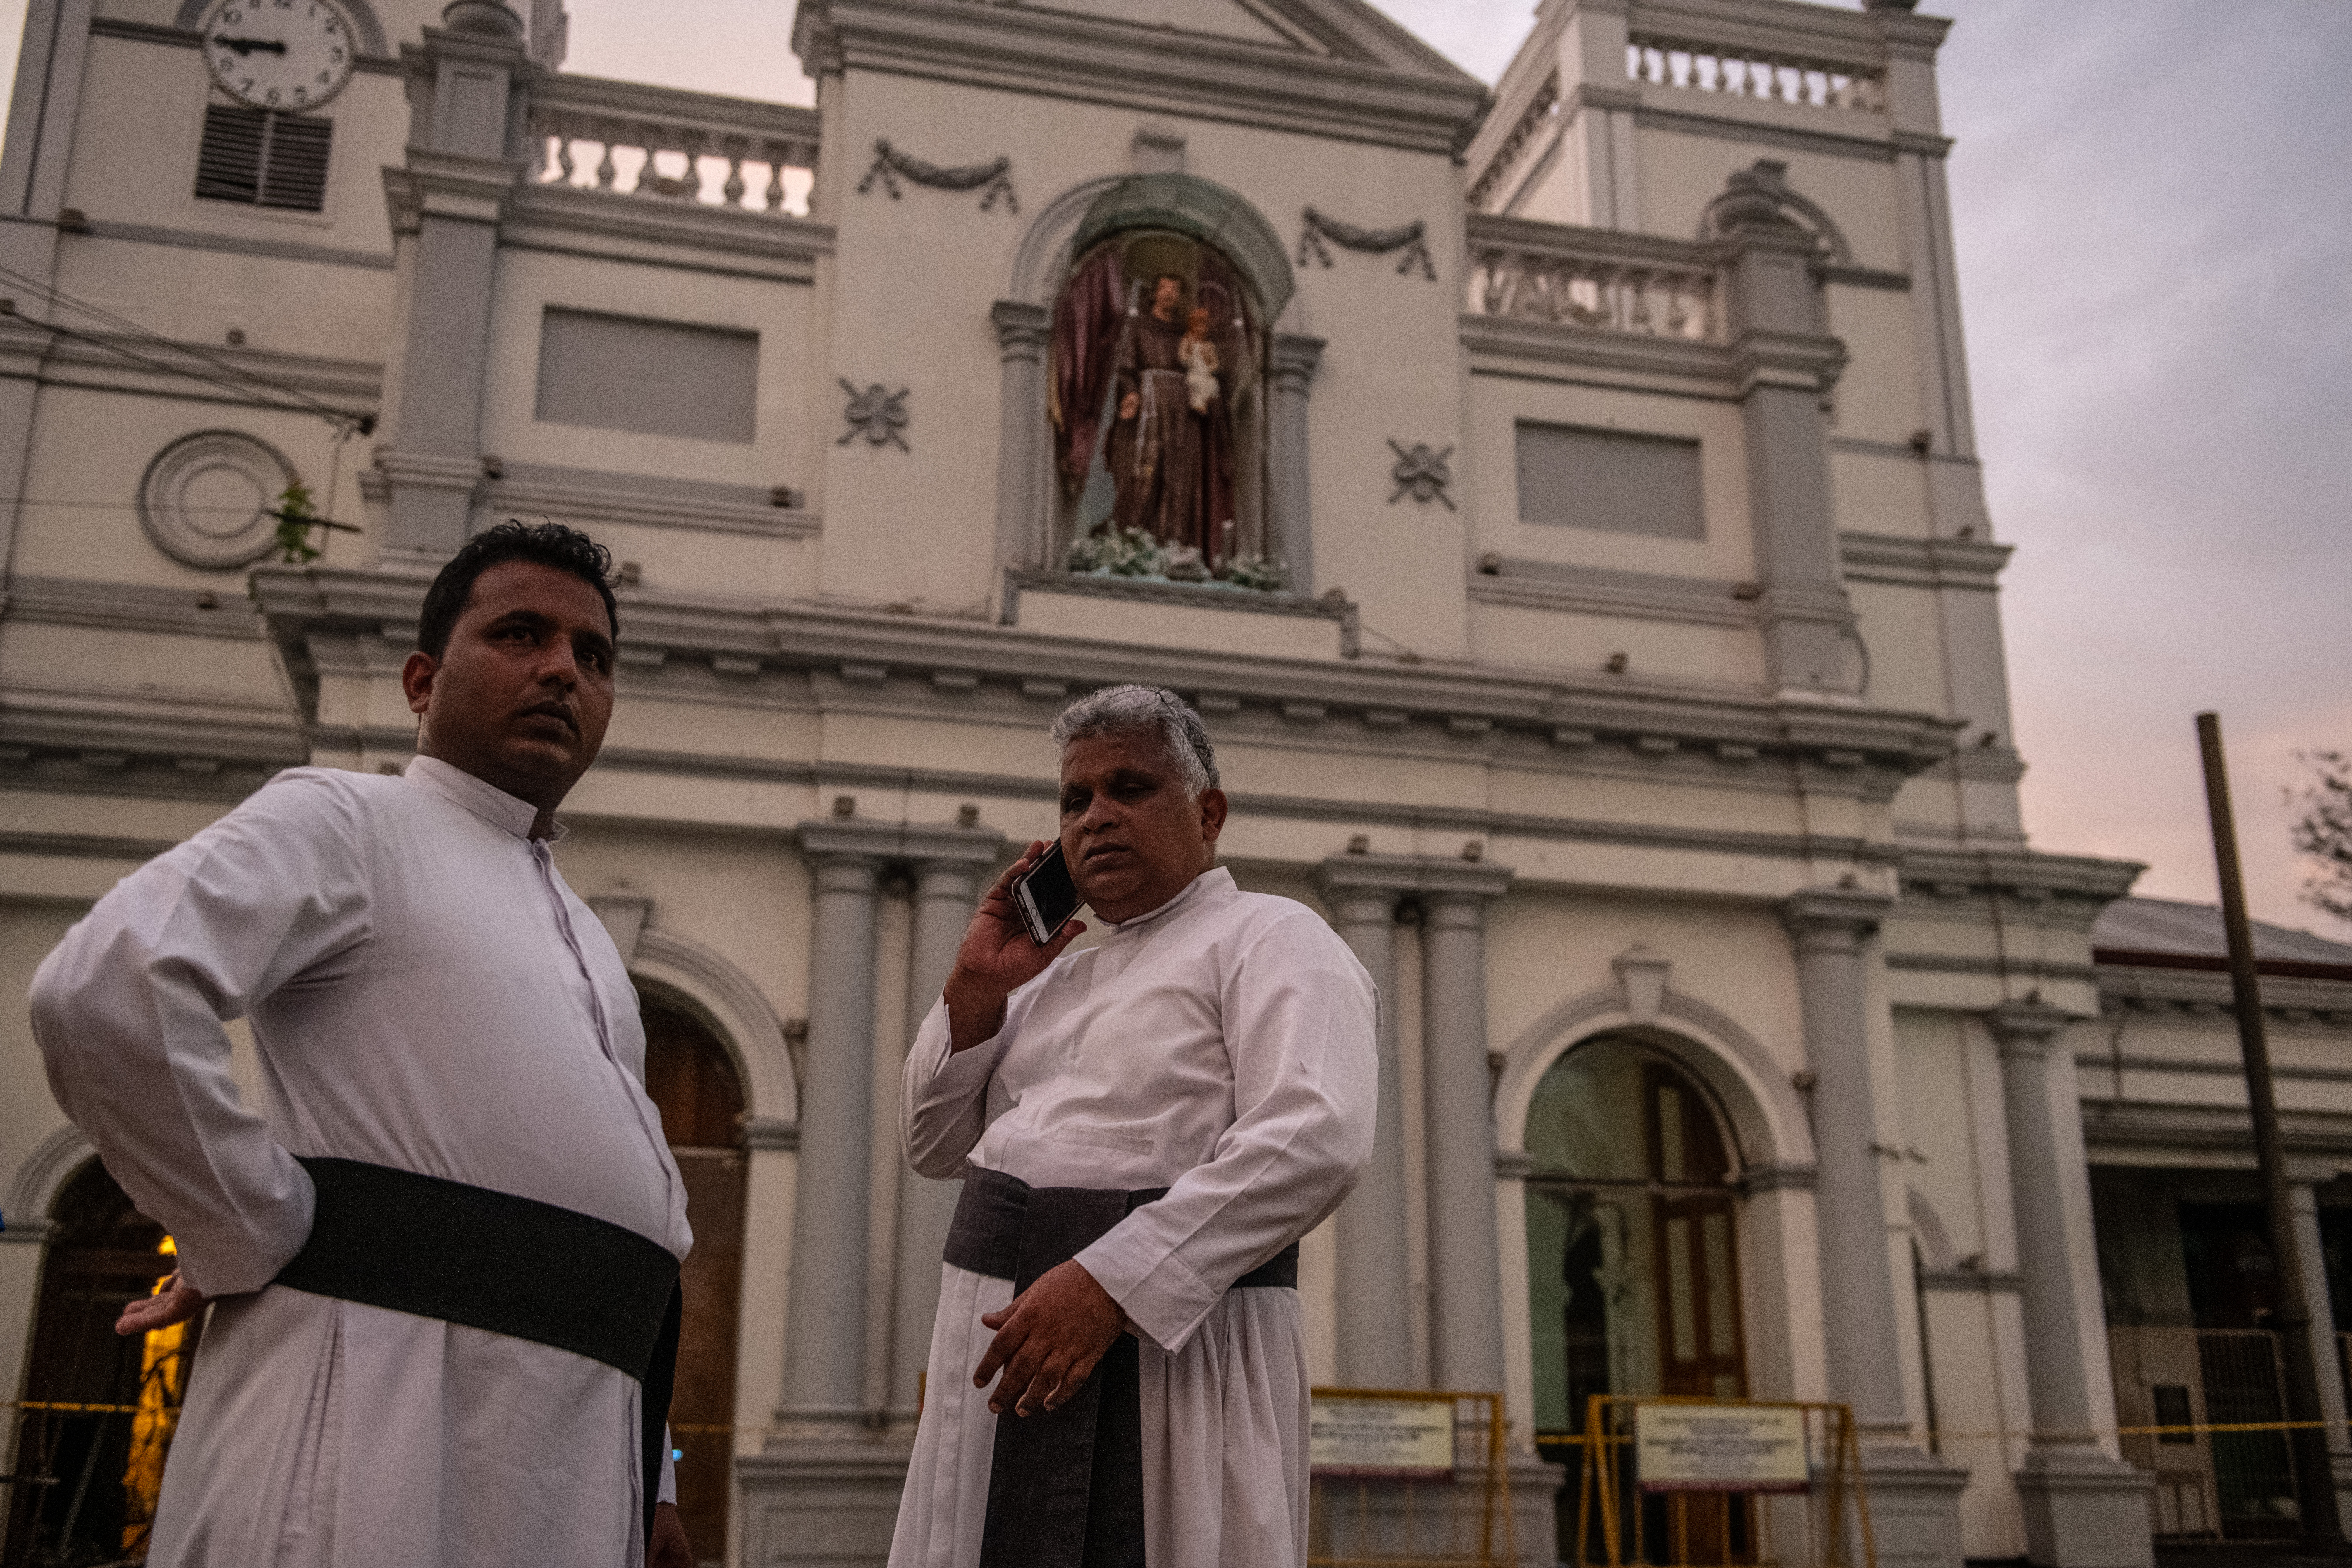 COLOMBO, SRI LANKA - APRIL 26: Priests stand outside St Anthony's Shrine on April 26, 2019 in Colombo, Sri Lanka. (Photo by Carl Court/Getty Images)